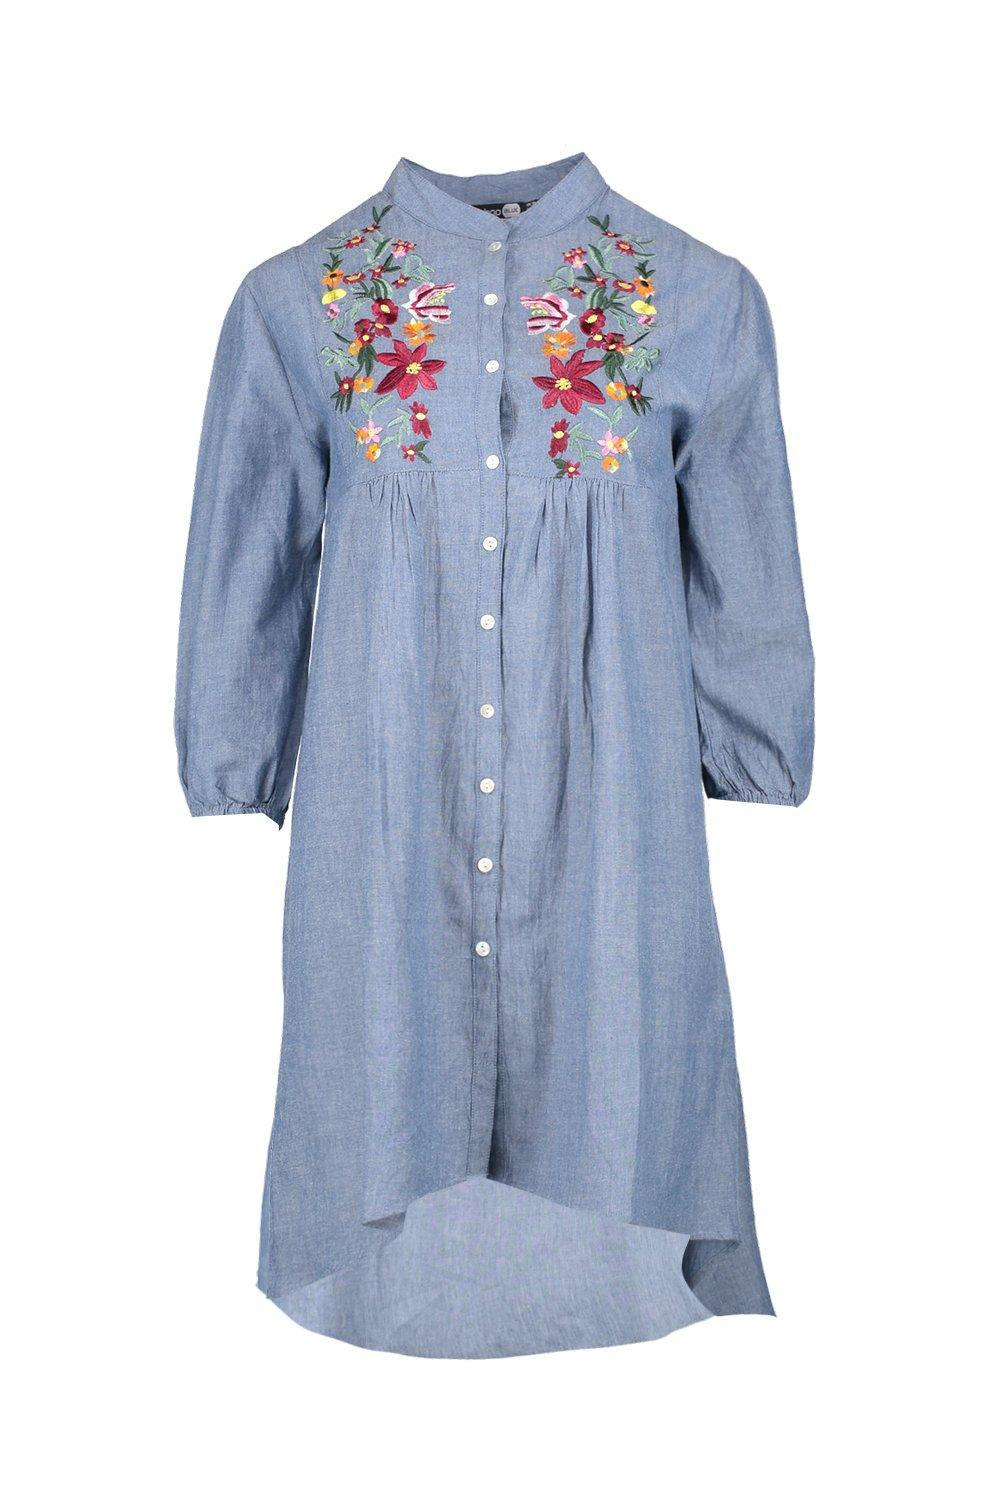 Boohoo womens ana embroidered denim shirt dress ebay